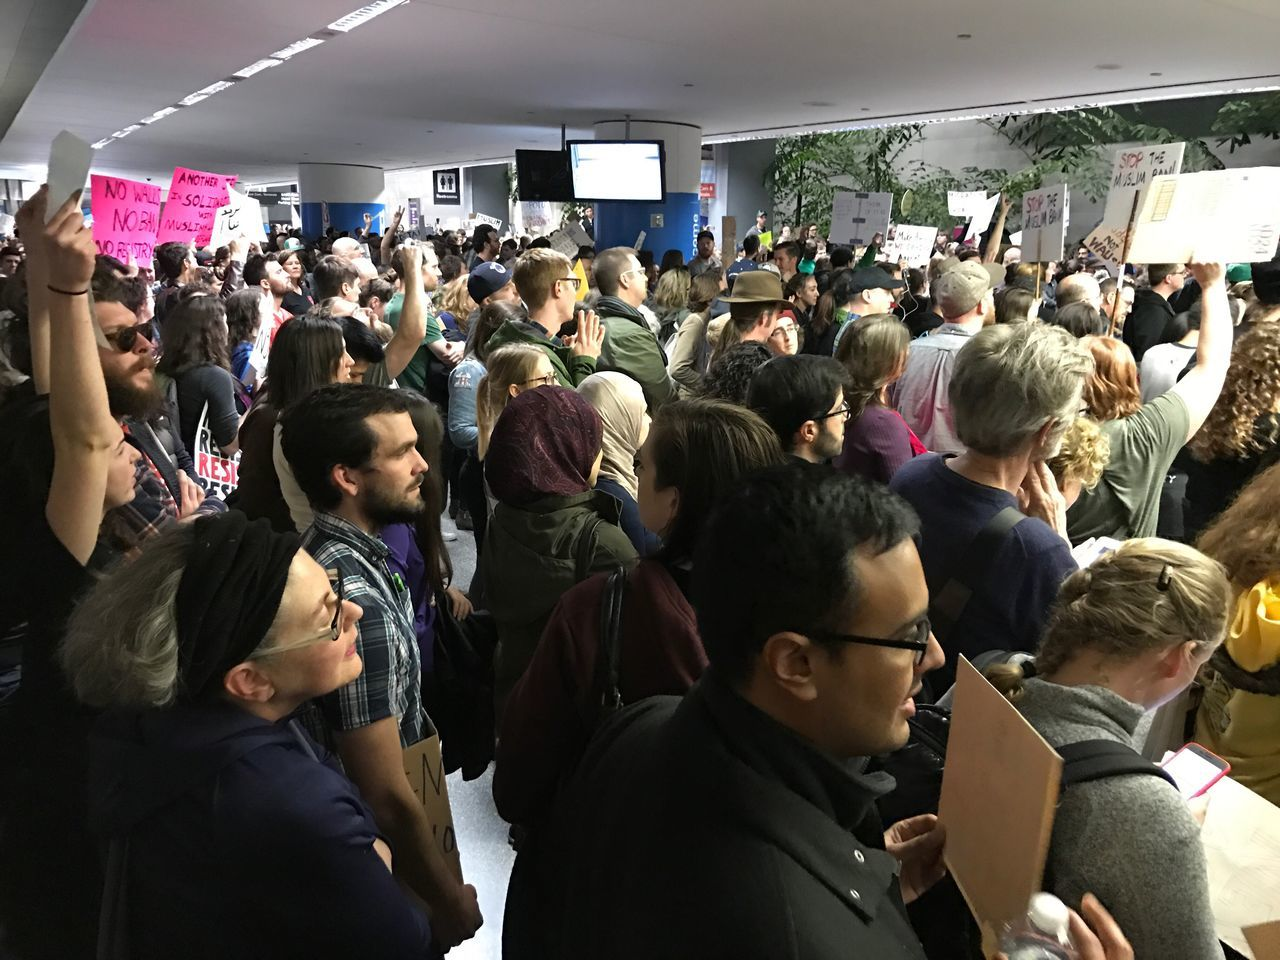 Yes we can. Protest at SFO on MuslimBan